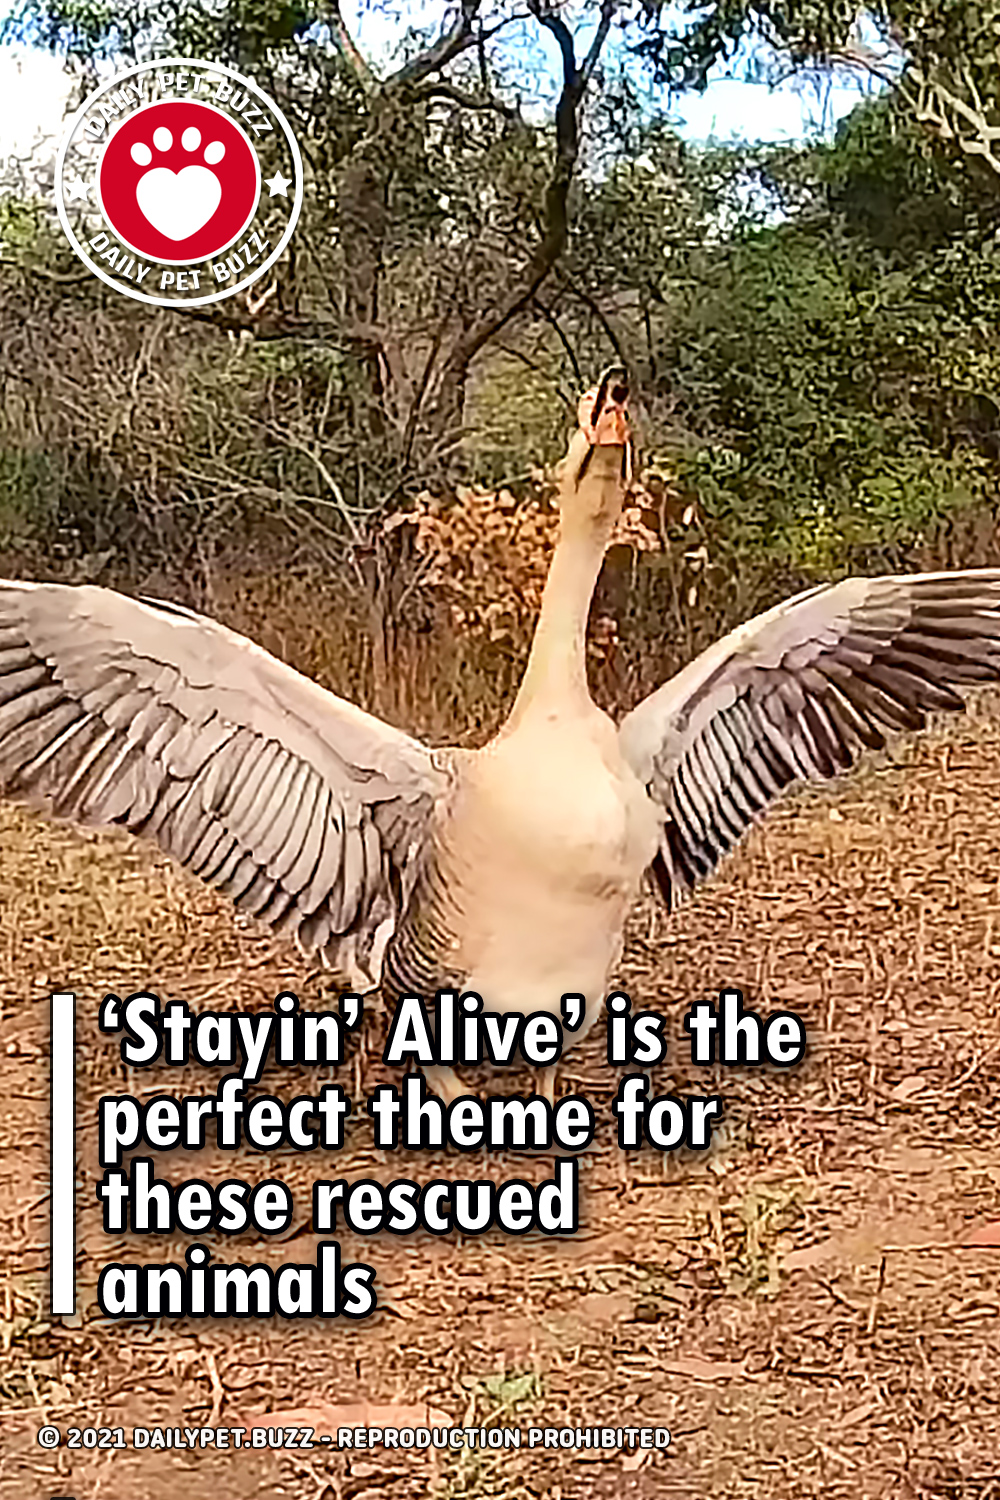 'Stayin' Alive' is the perfect theme for these rescued animals